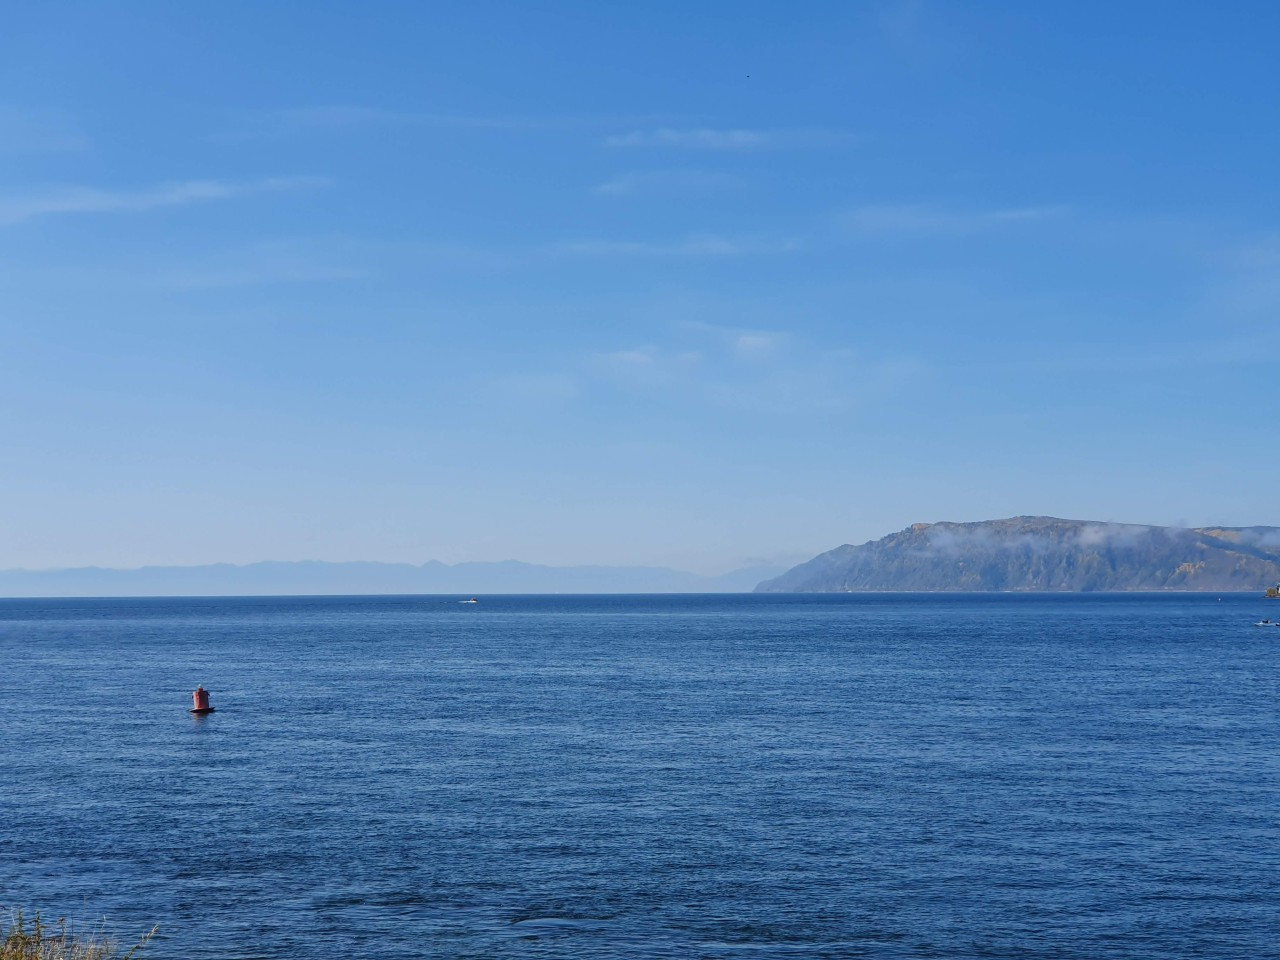 Day 20: Kayaking on Lake Baikal